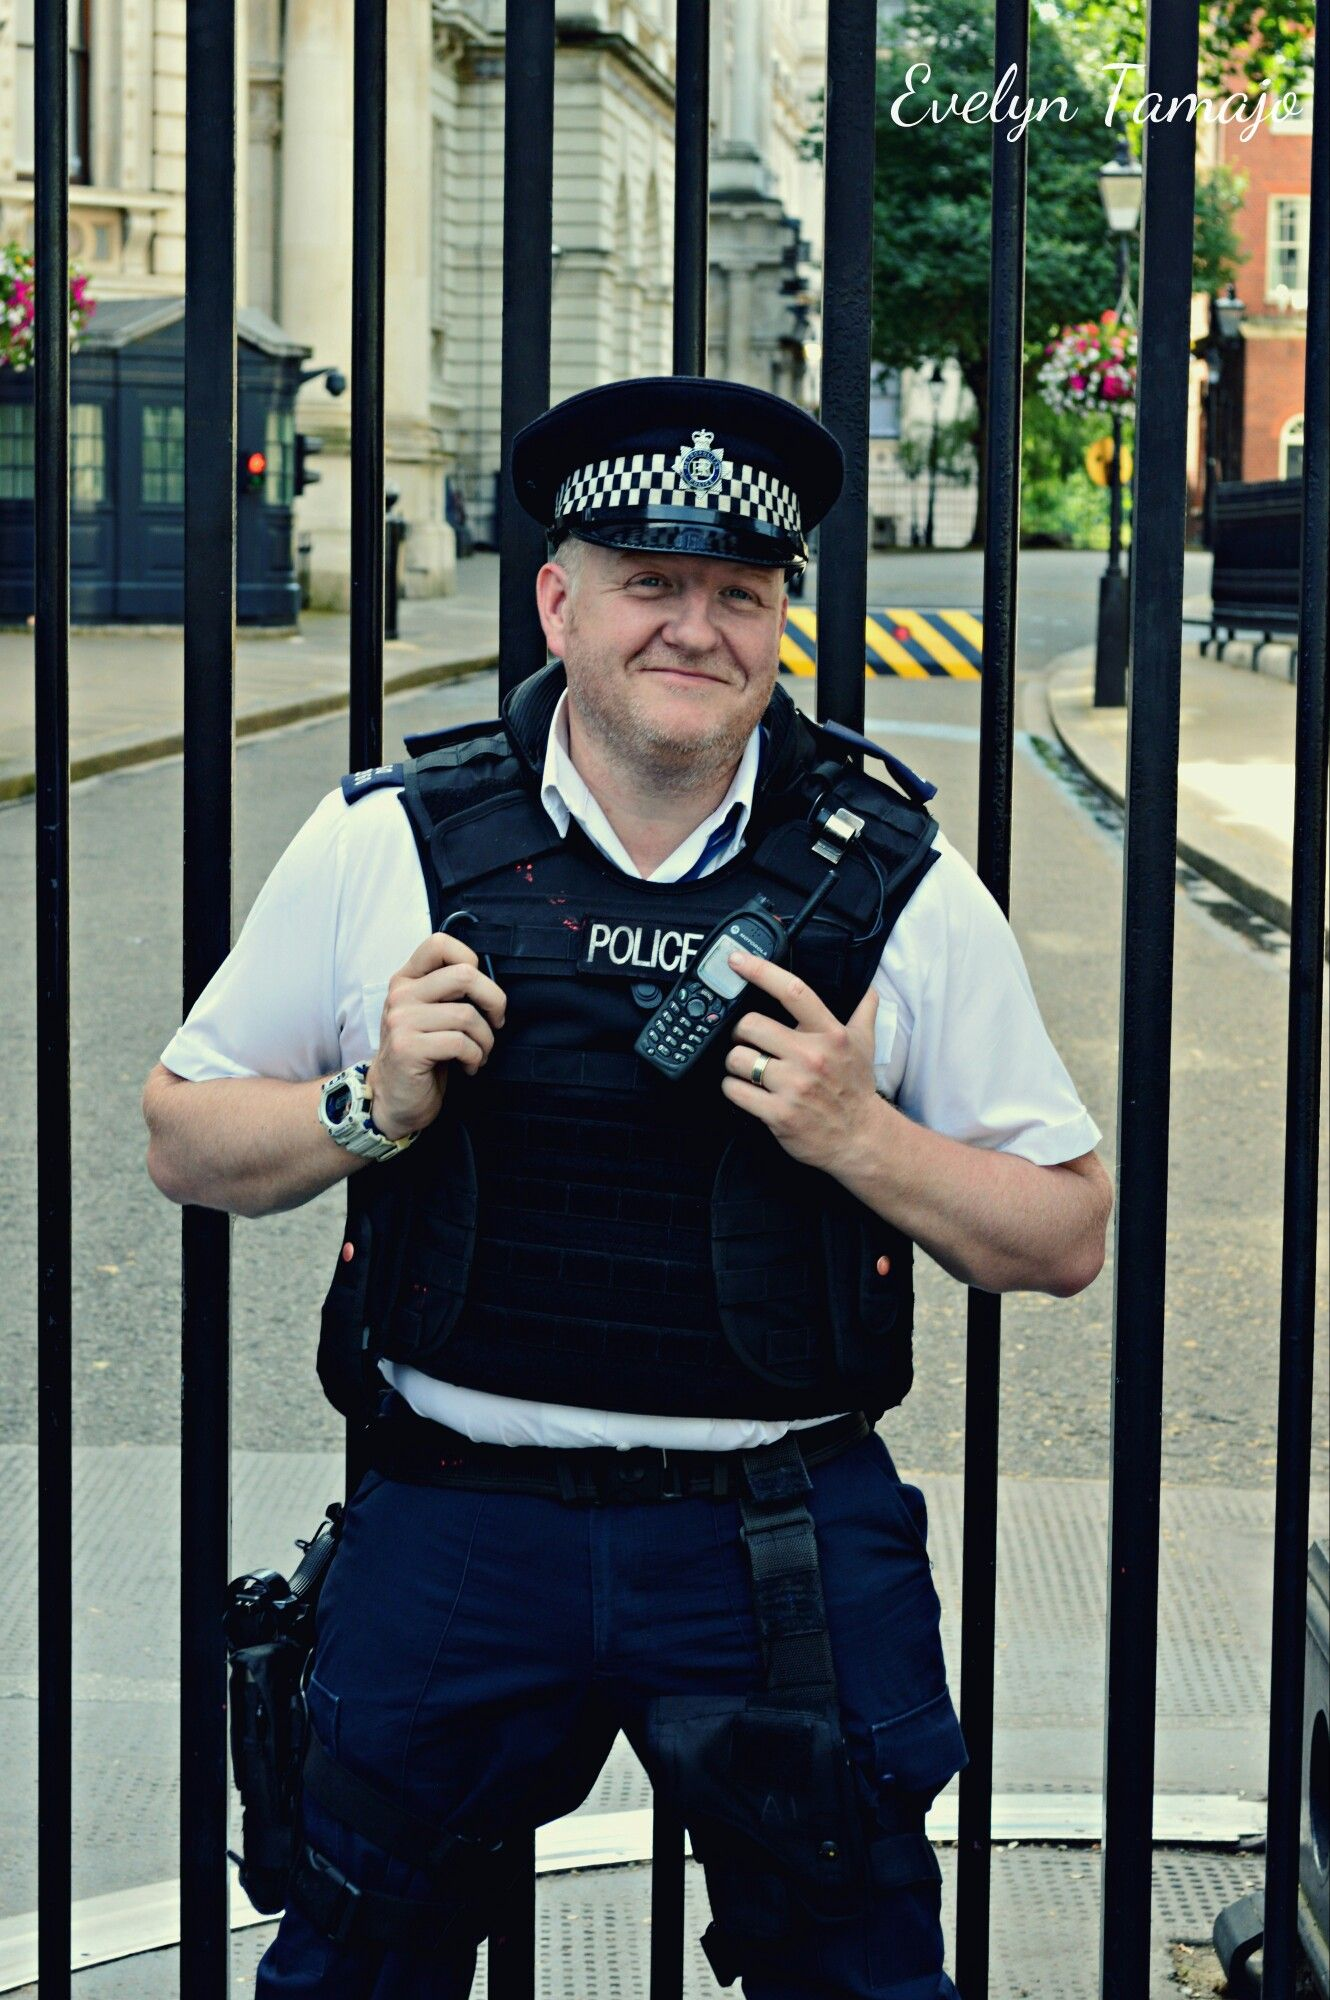 A friendly and smiley police officer at 10 Downing Street. London, July 2015. #policeofficer #londonpoliceofficers #london #10downingstreet #westminster #people #londoner #metpolice #photography #evelyntamajo #theclassydreamer #smile #friendly #londinium #nikon